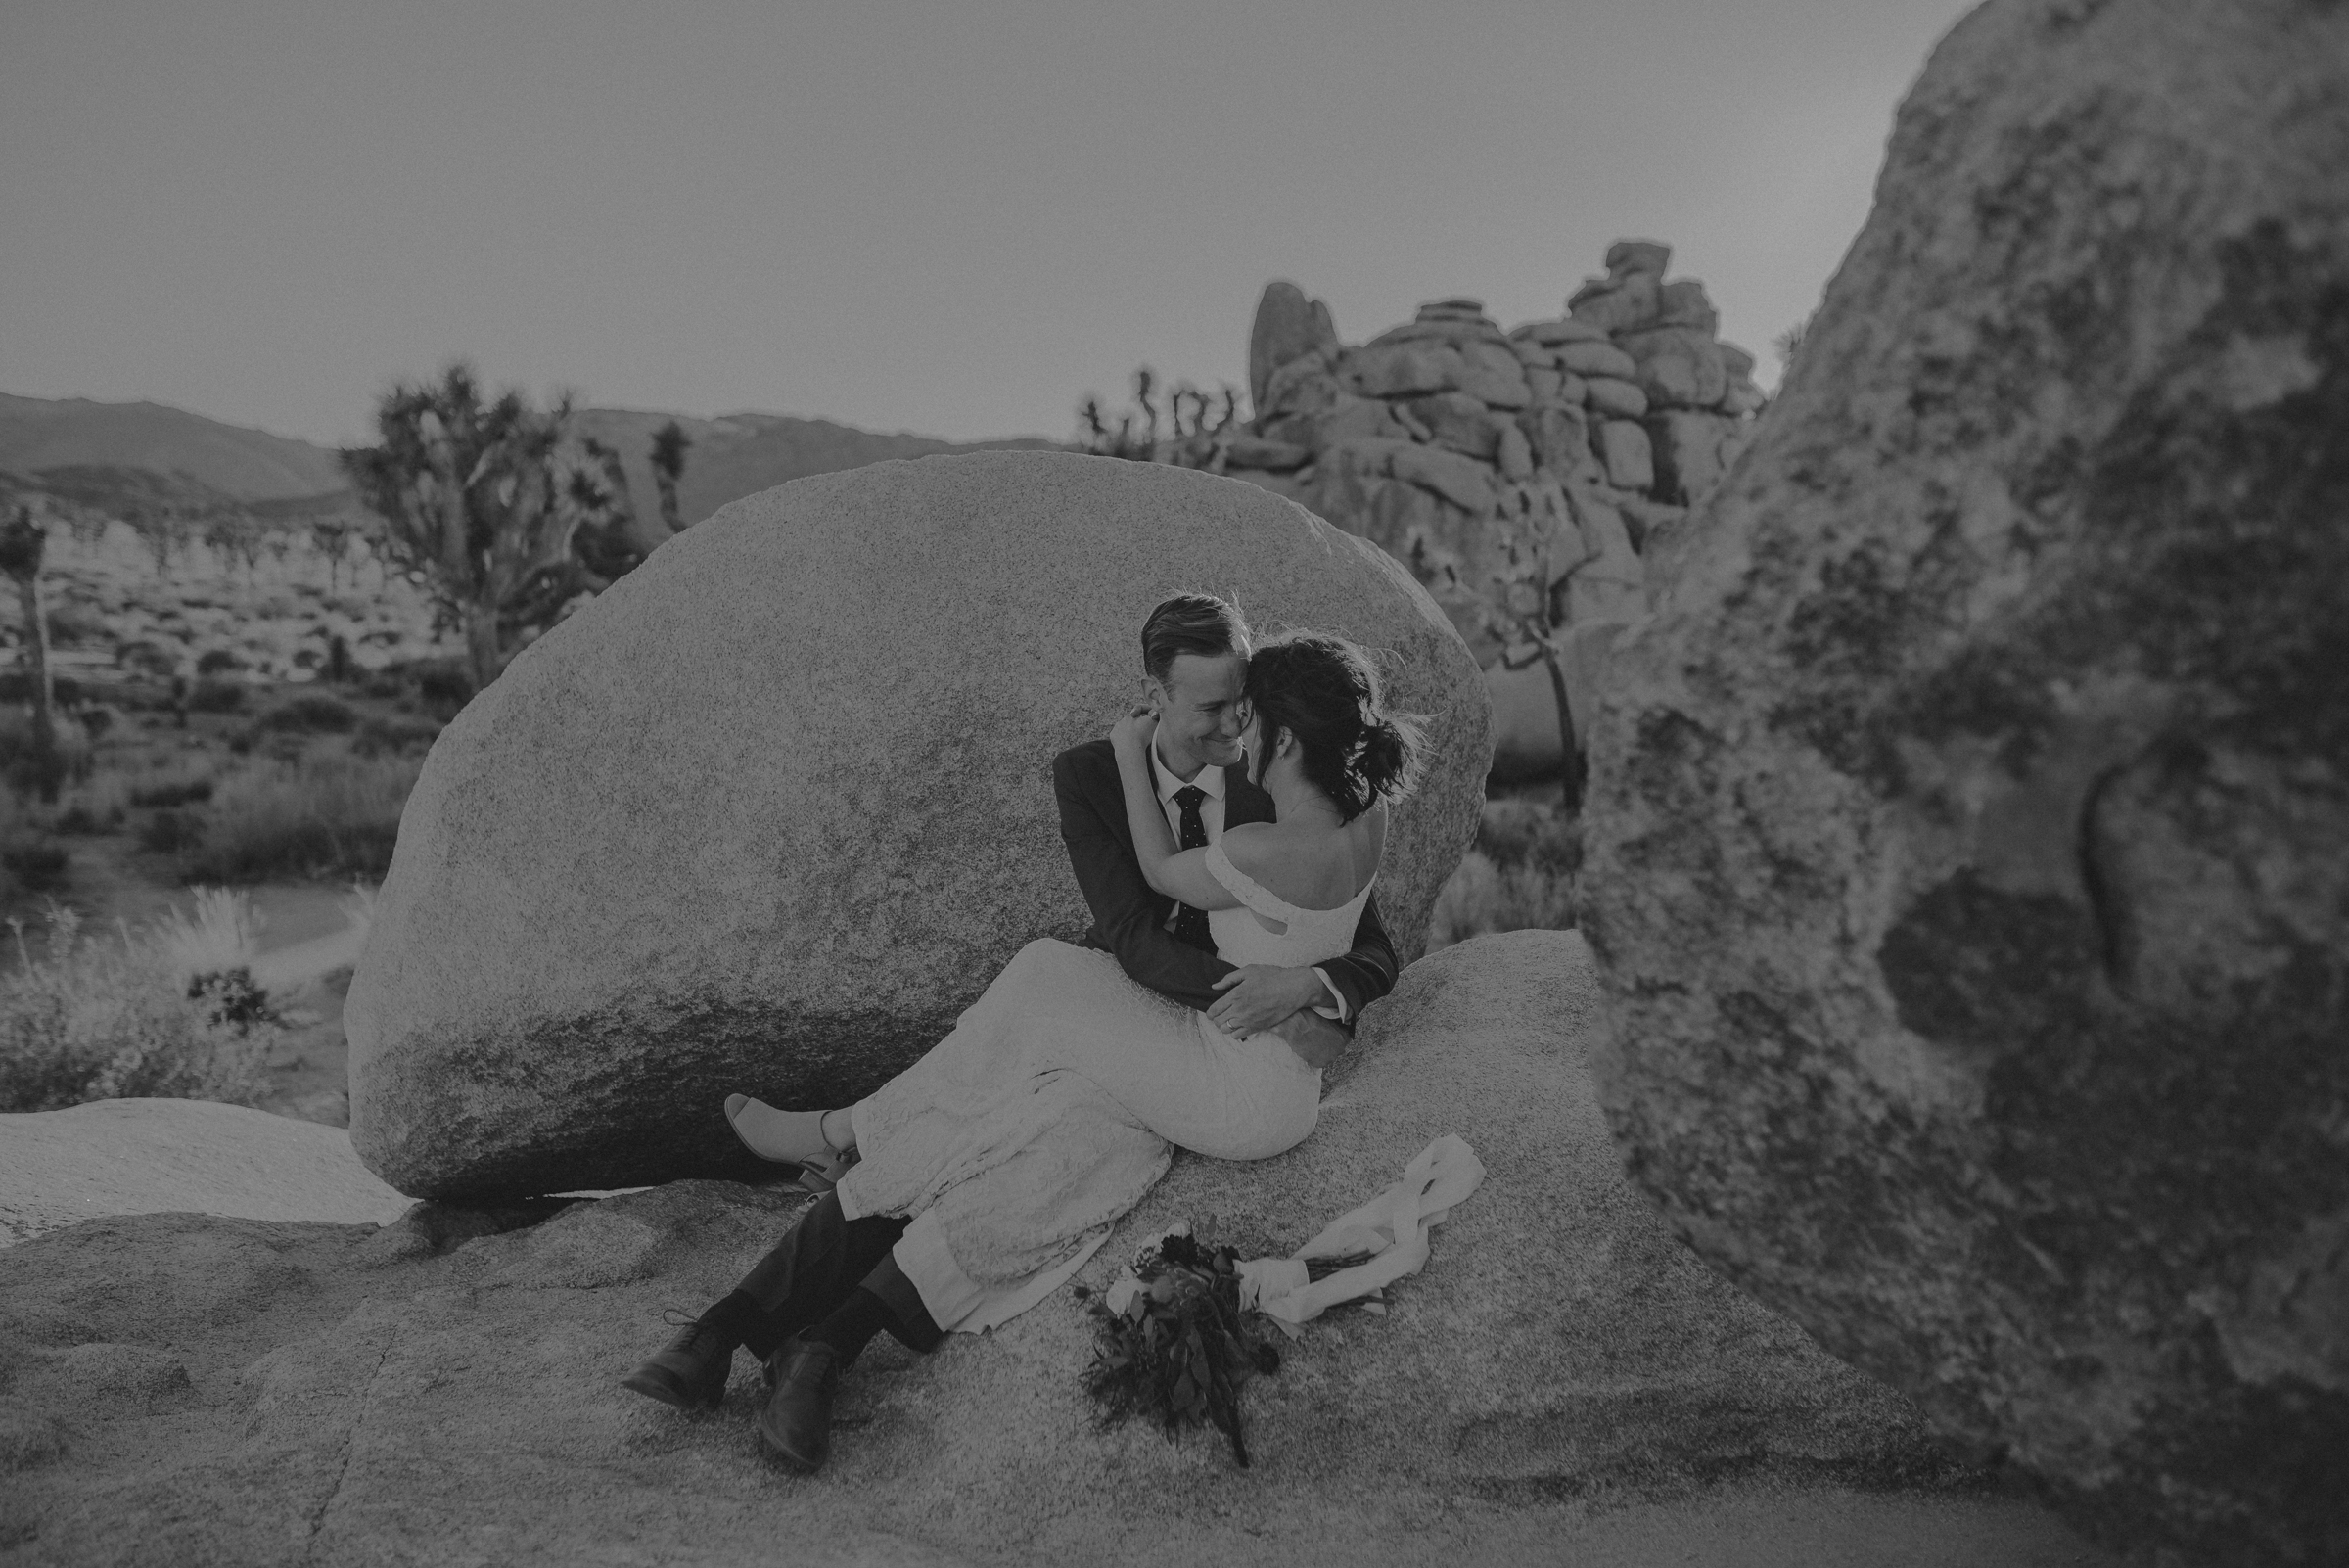 Joshua Tree Elopement - Los Angeles Wedding Photographers - IsaiahAndTaylor.com-075.jpg